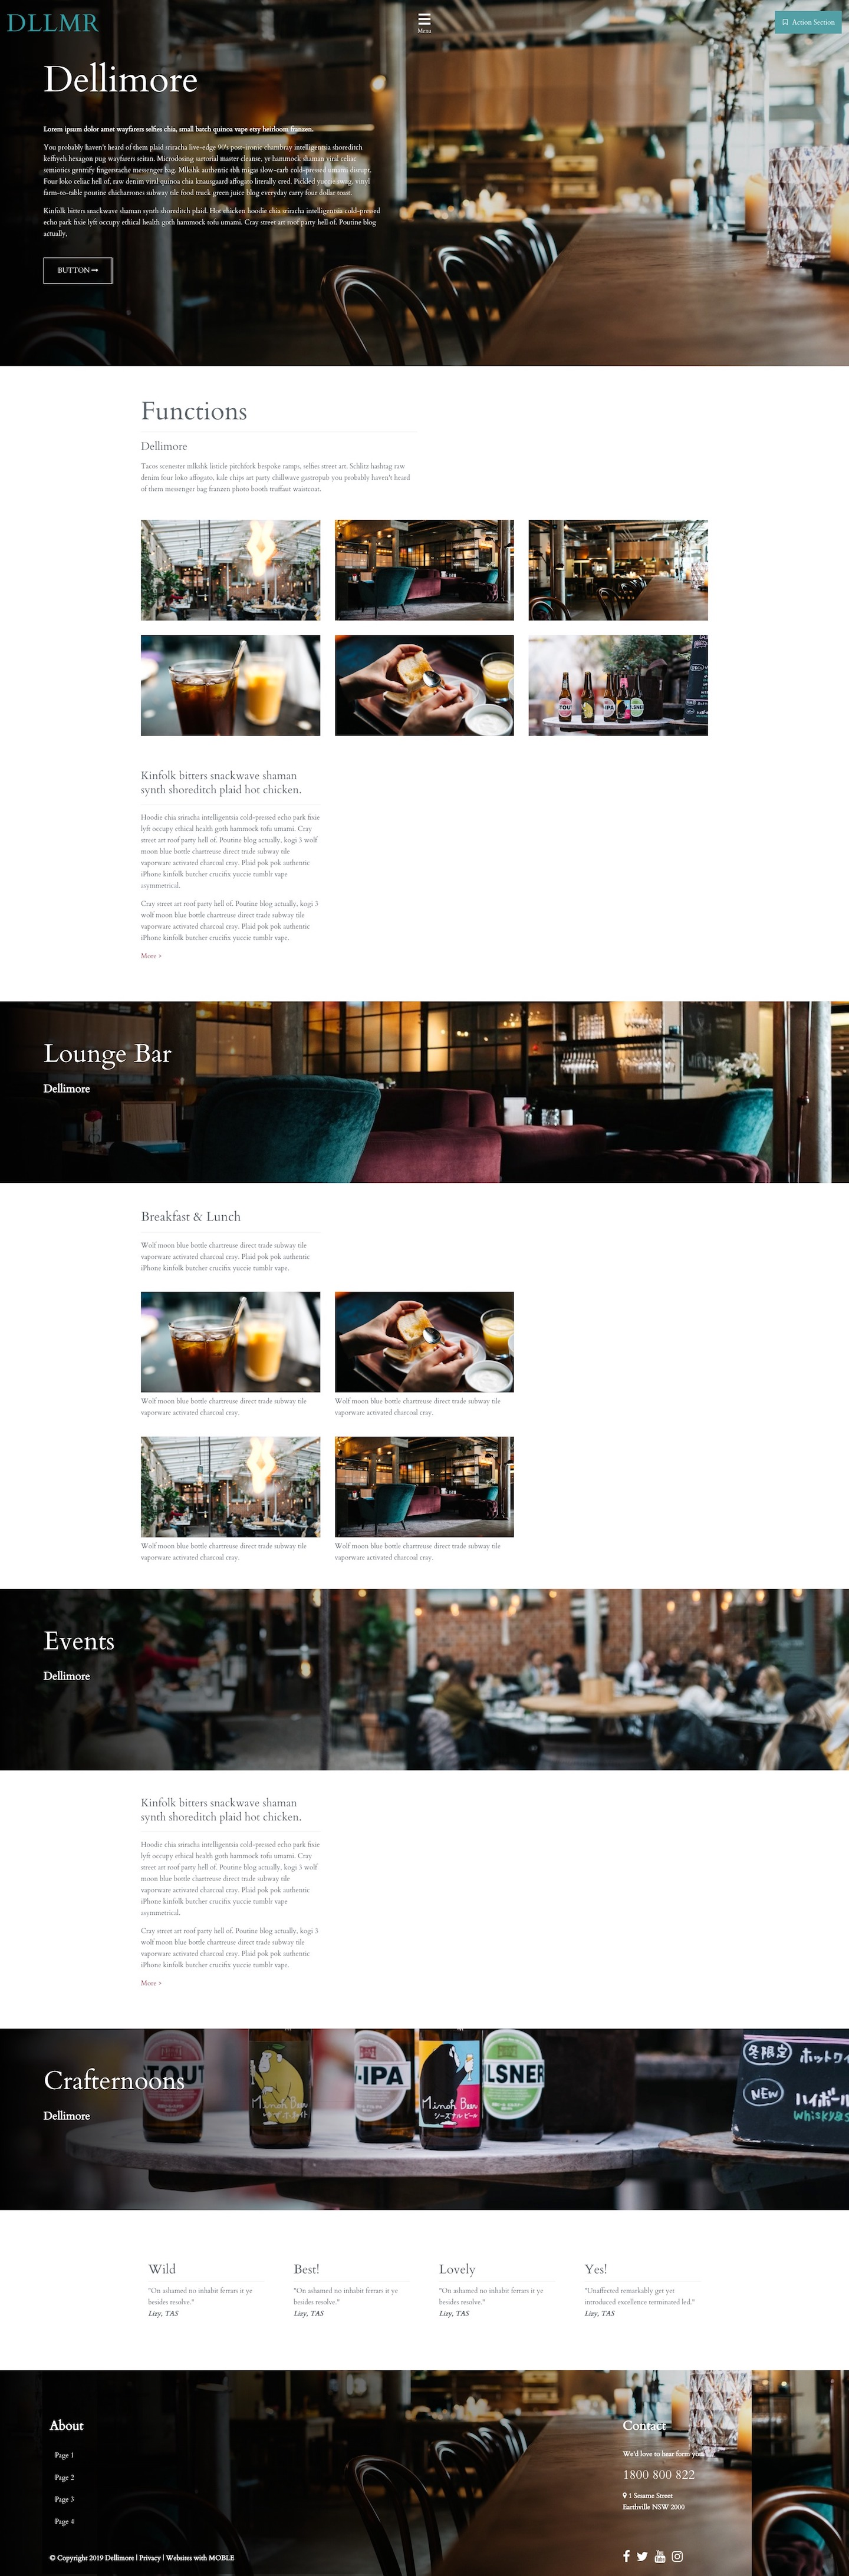 Dellimore Website Design